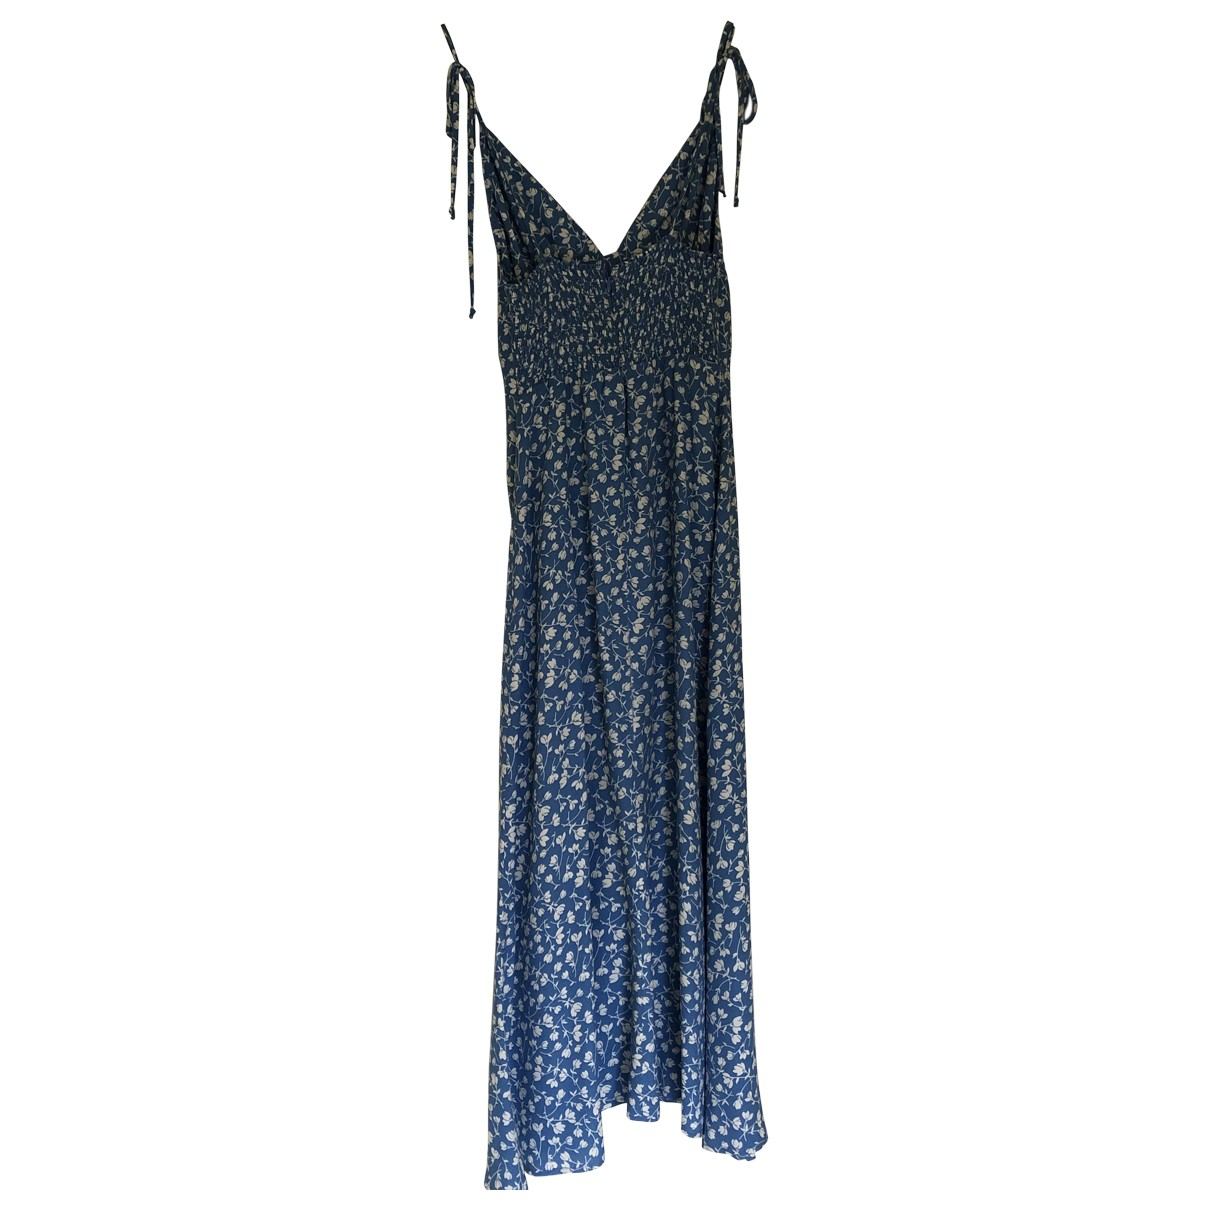 Reformation N Blue dress for Women 2 US